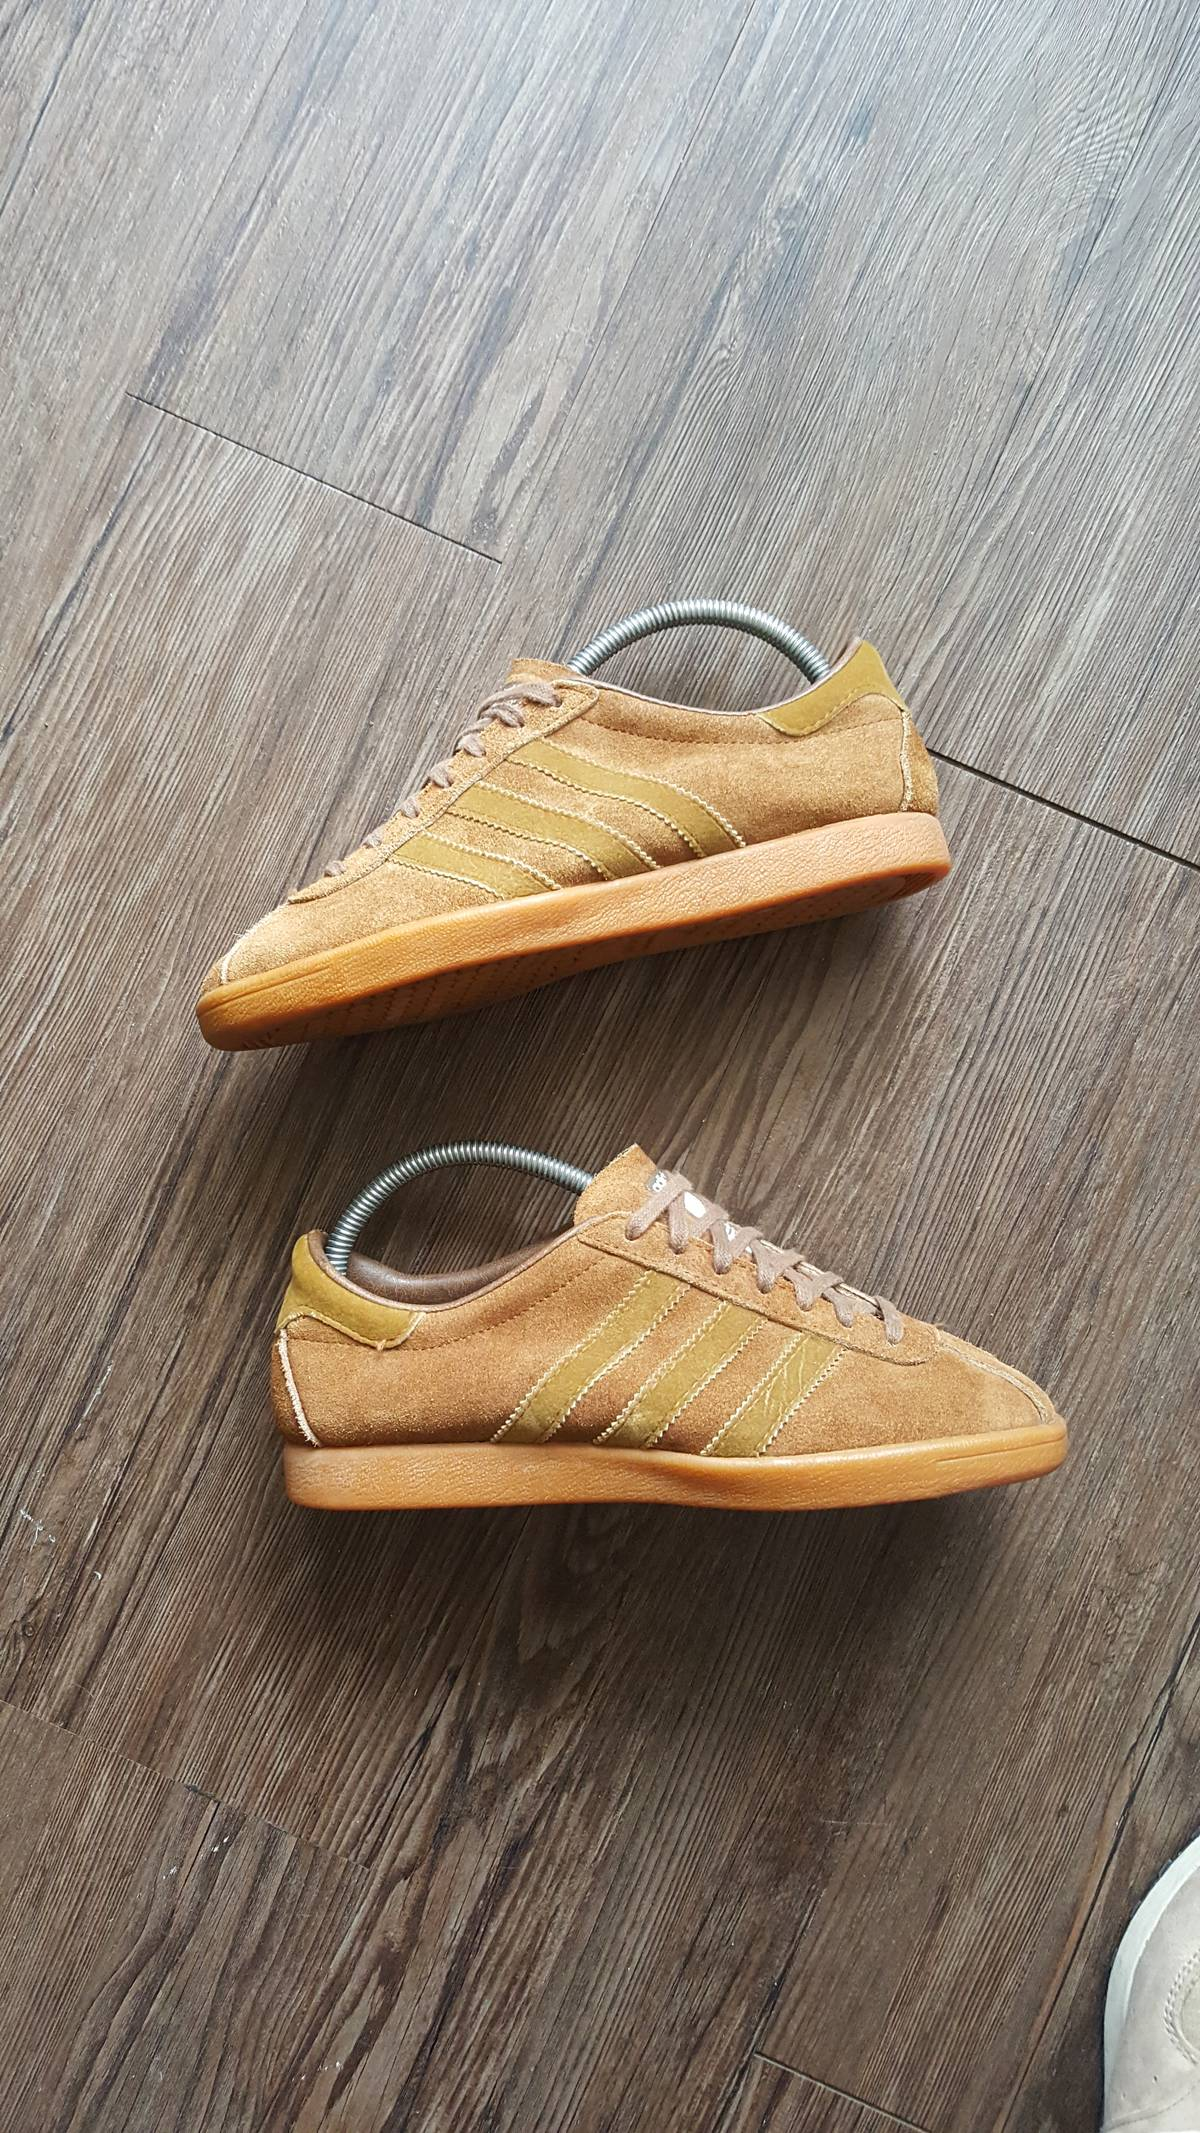 Adidas Adidas Tobacco Made In France 70s Vintage Size 6 $120